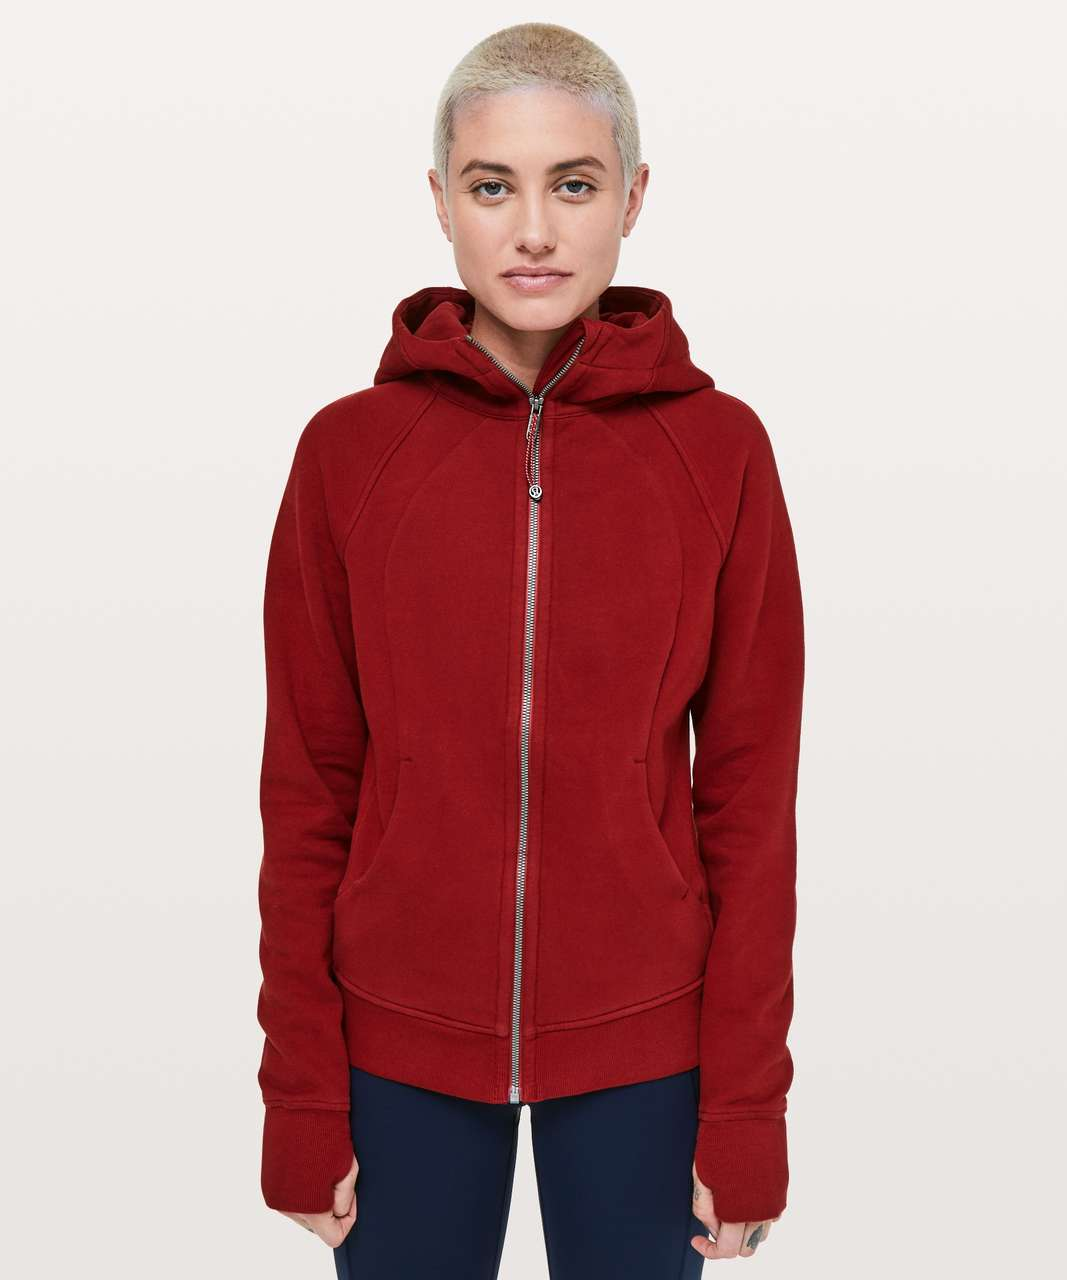 Lululemon Scuba Hoodie *Light Cotton Fleece - Dark Sport Red